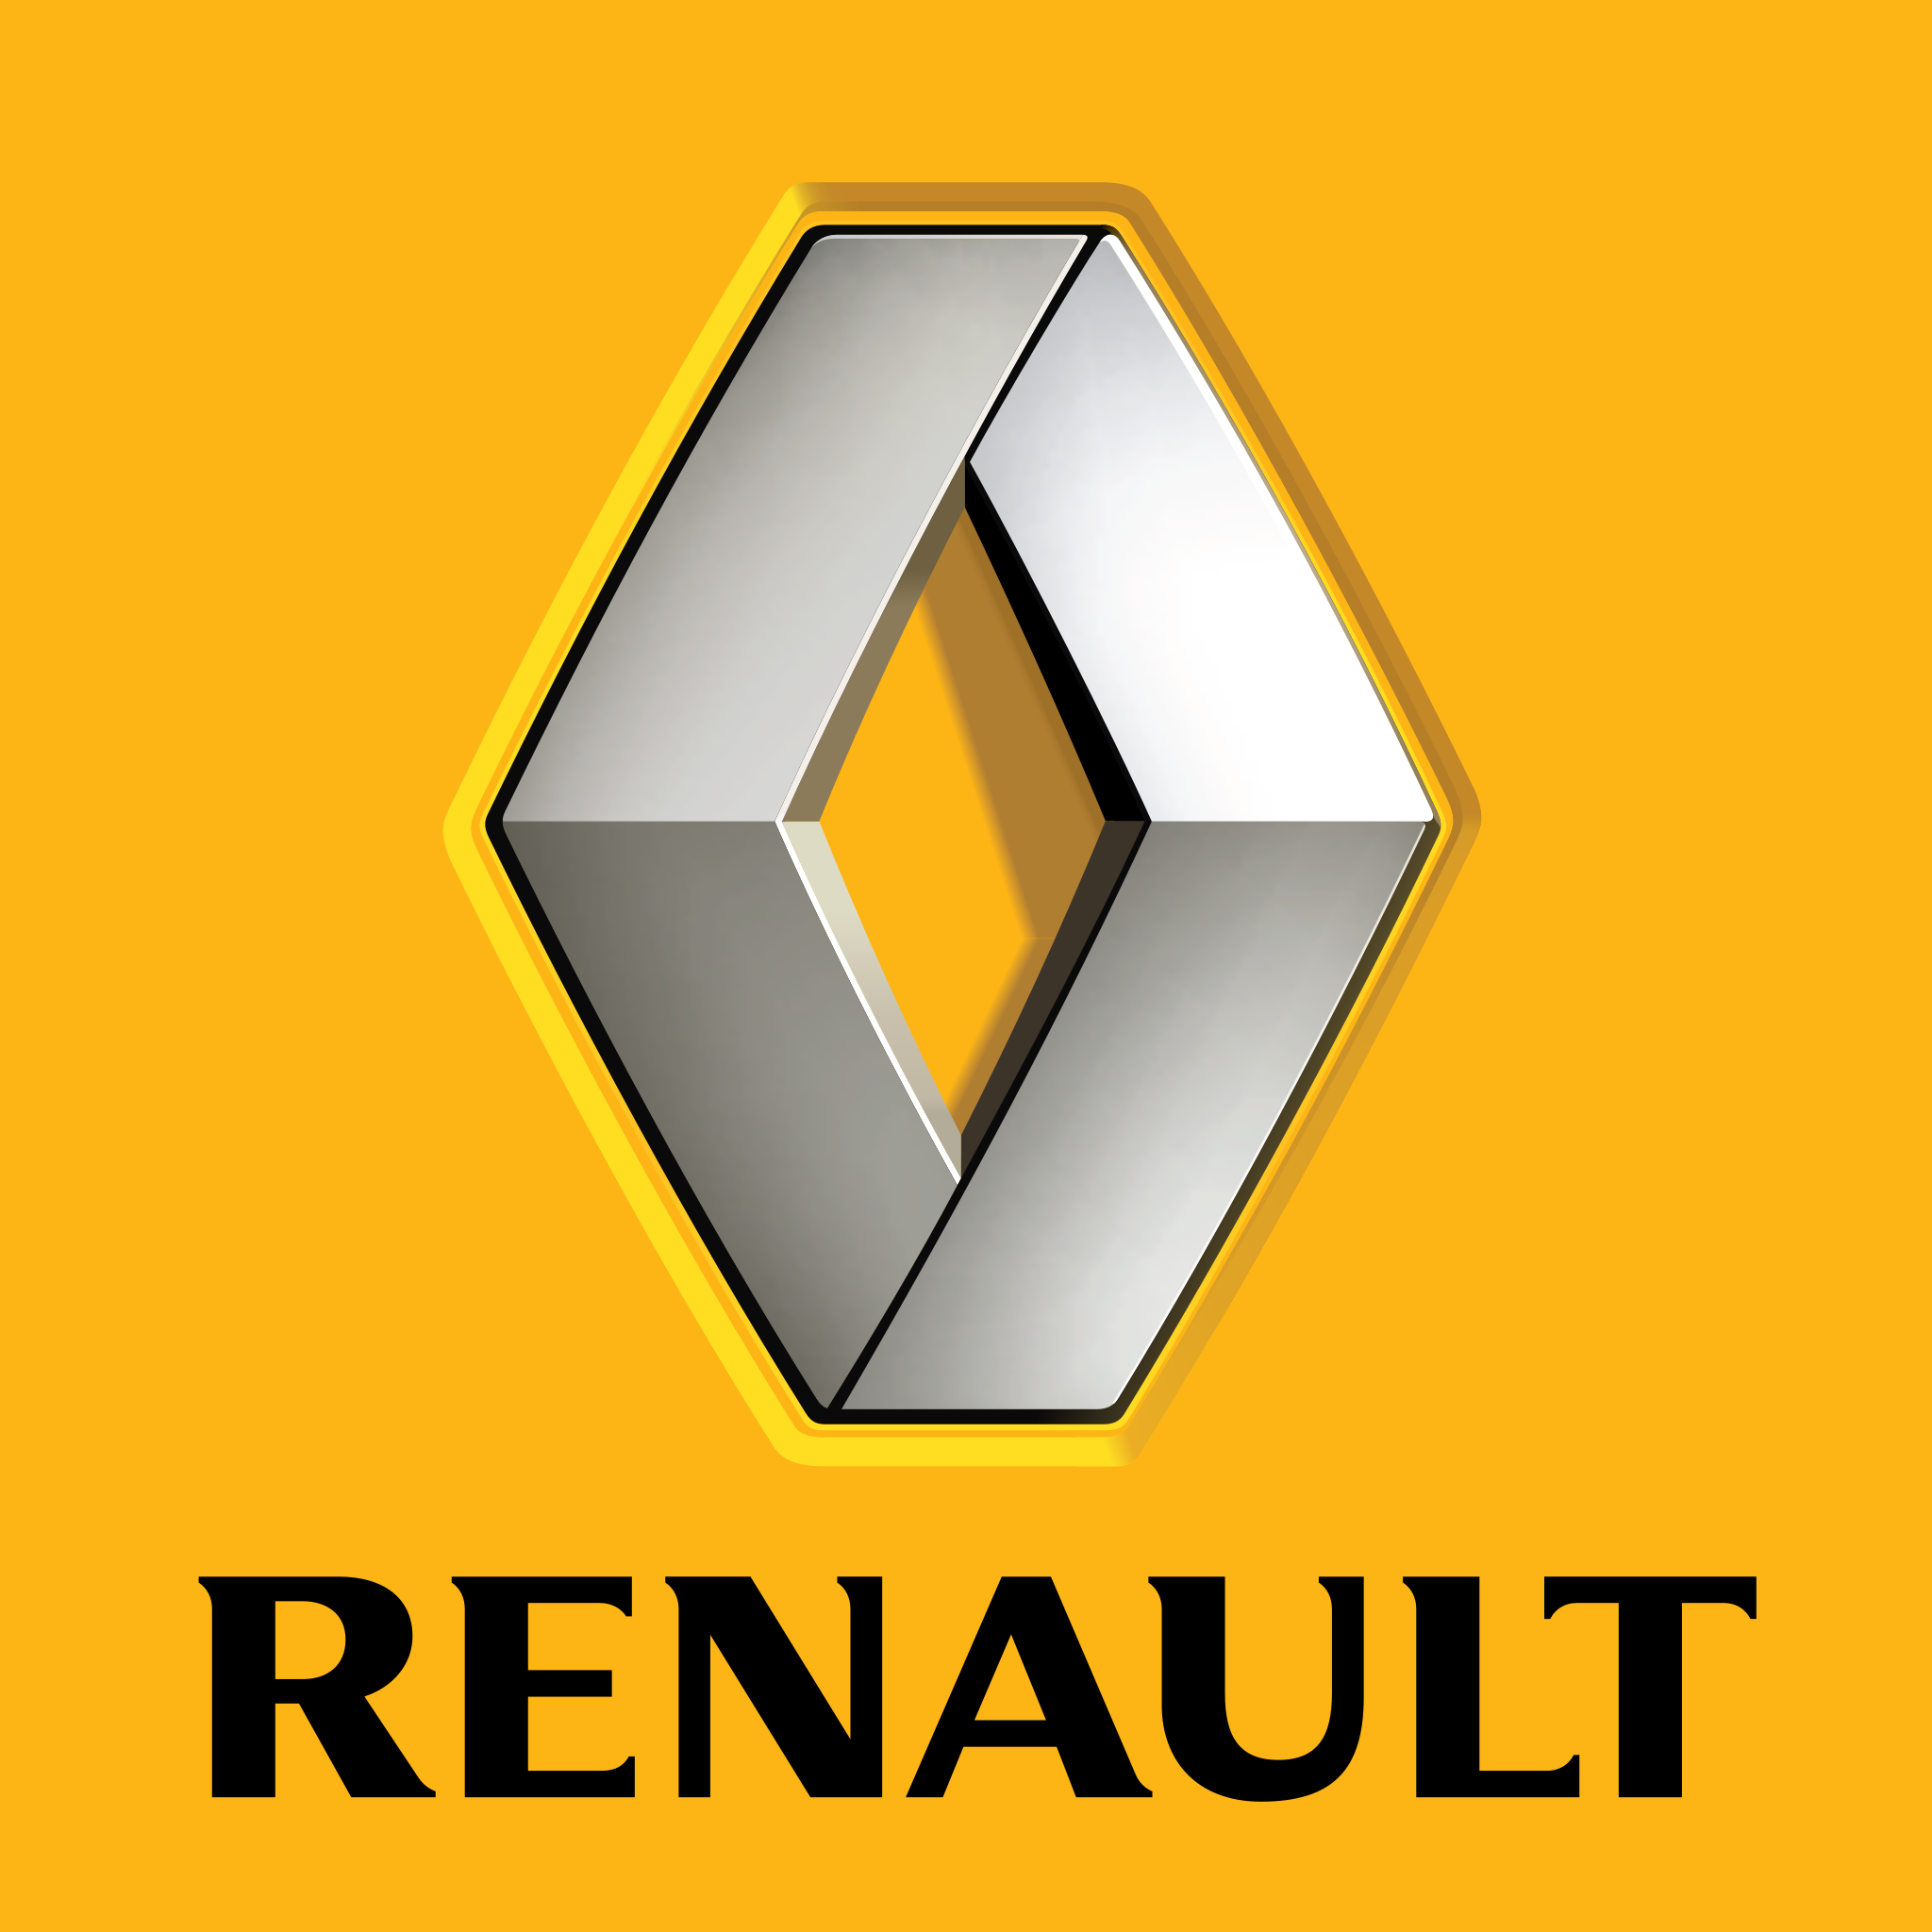 Renault Logo (2007) 2048x2048 HD Png - Renault PNG - Agroexpo 2007 Vector PNG